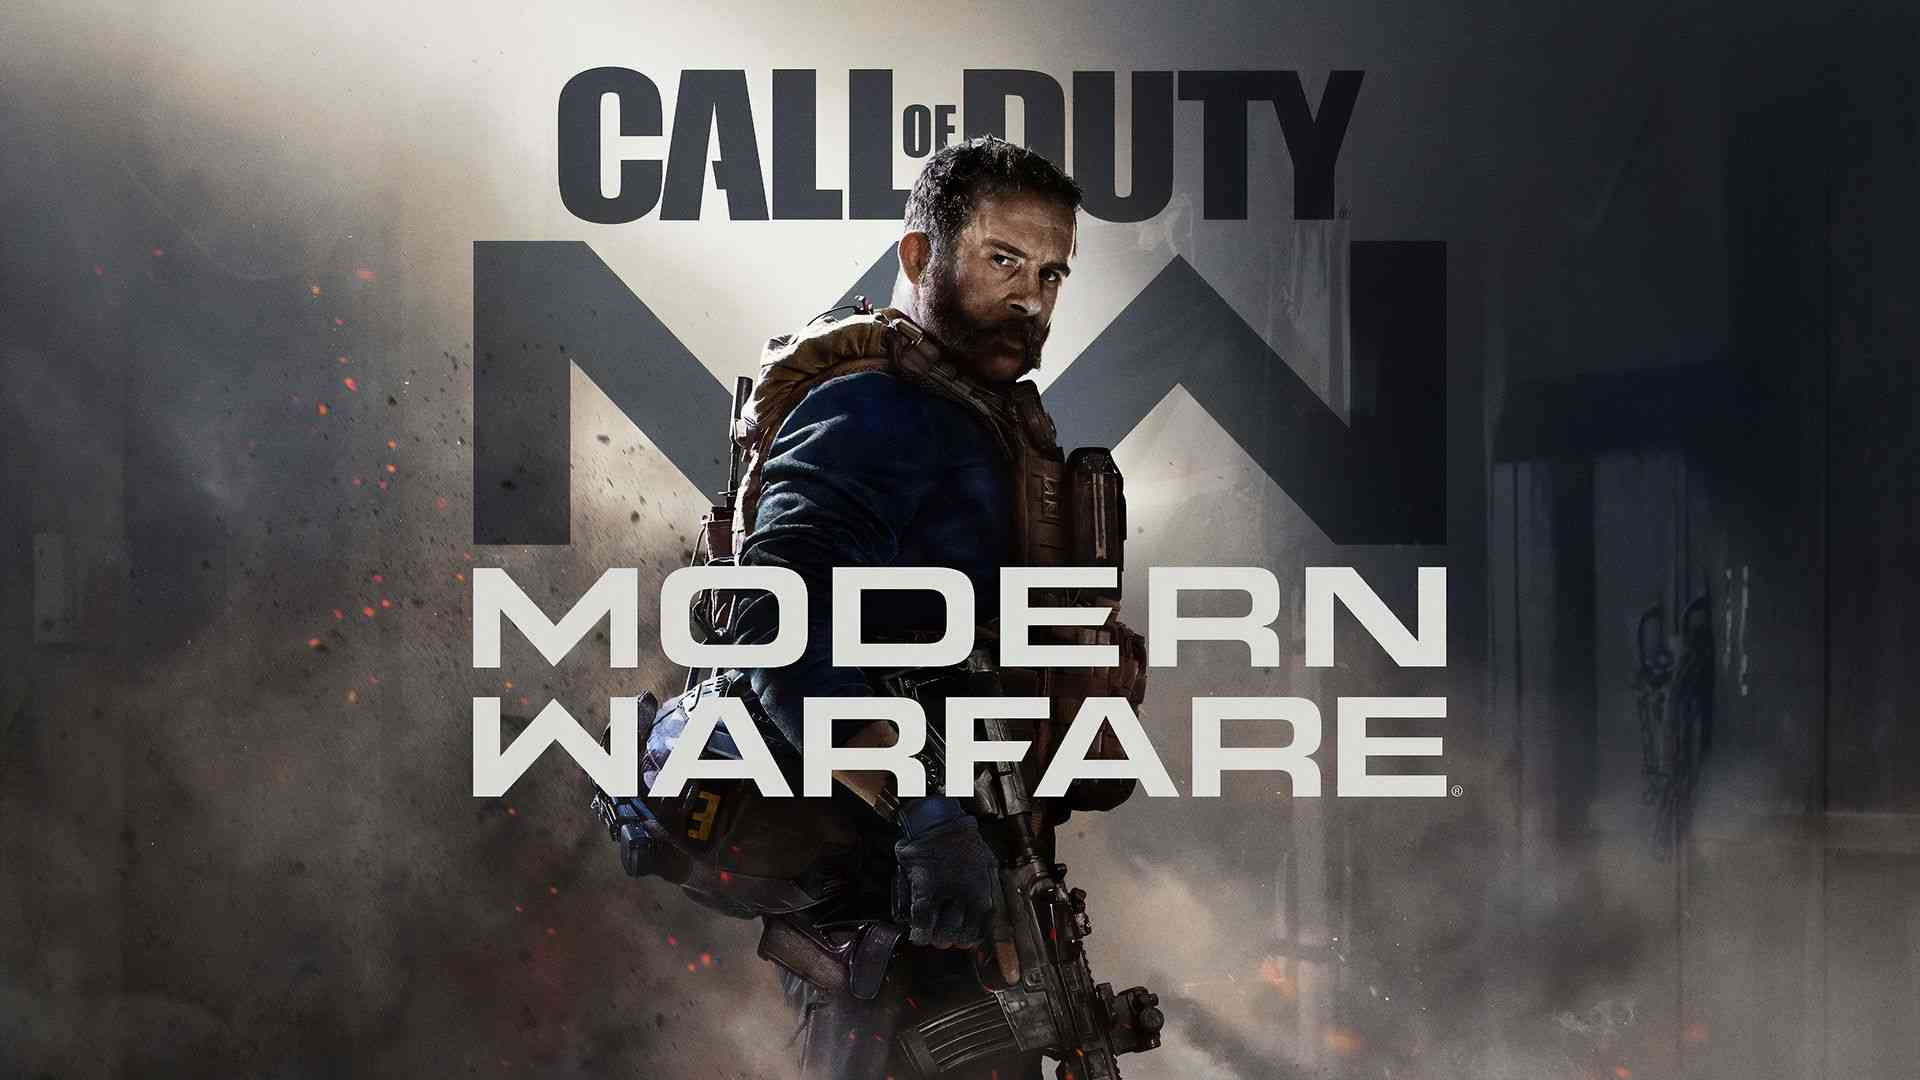 According to Rumors, the Call of Duty Modern Warfare Beta Release Date Has Been Leaked